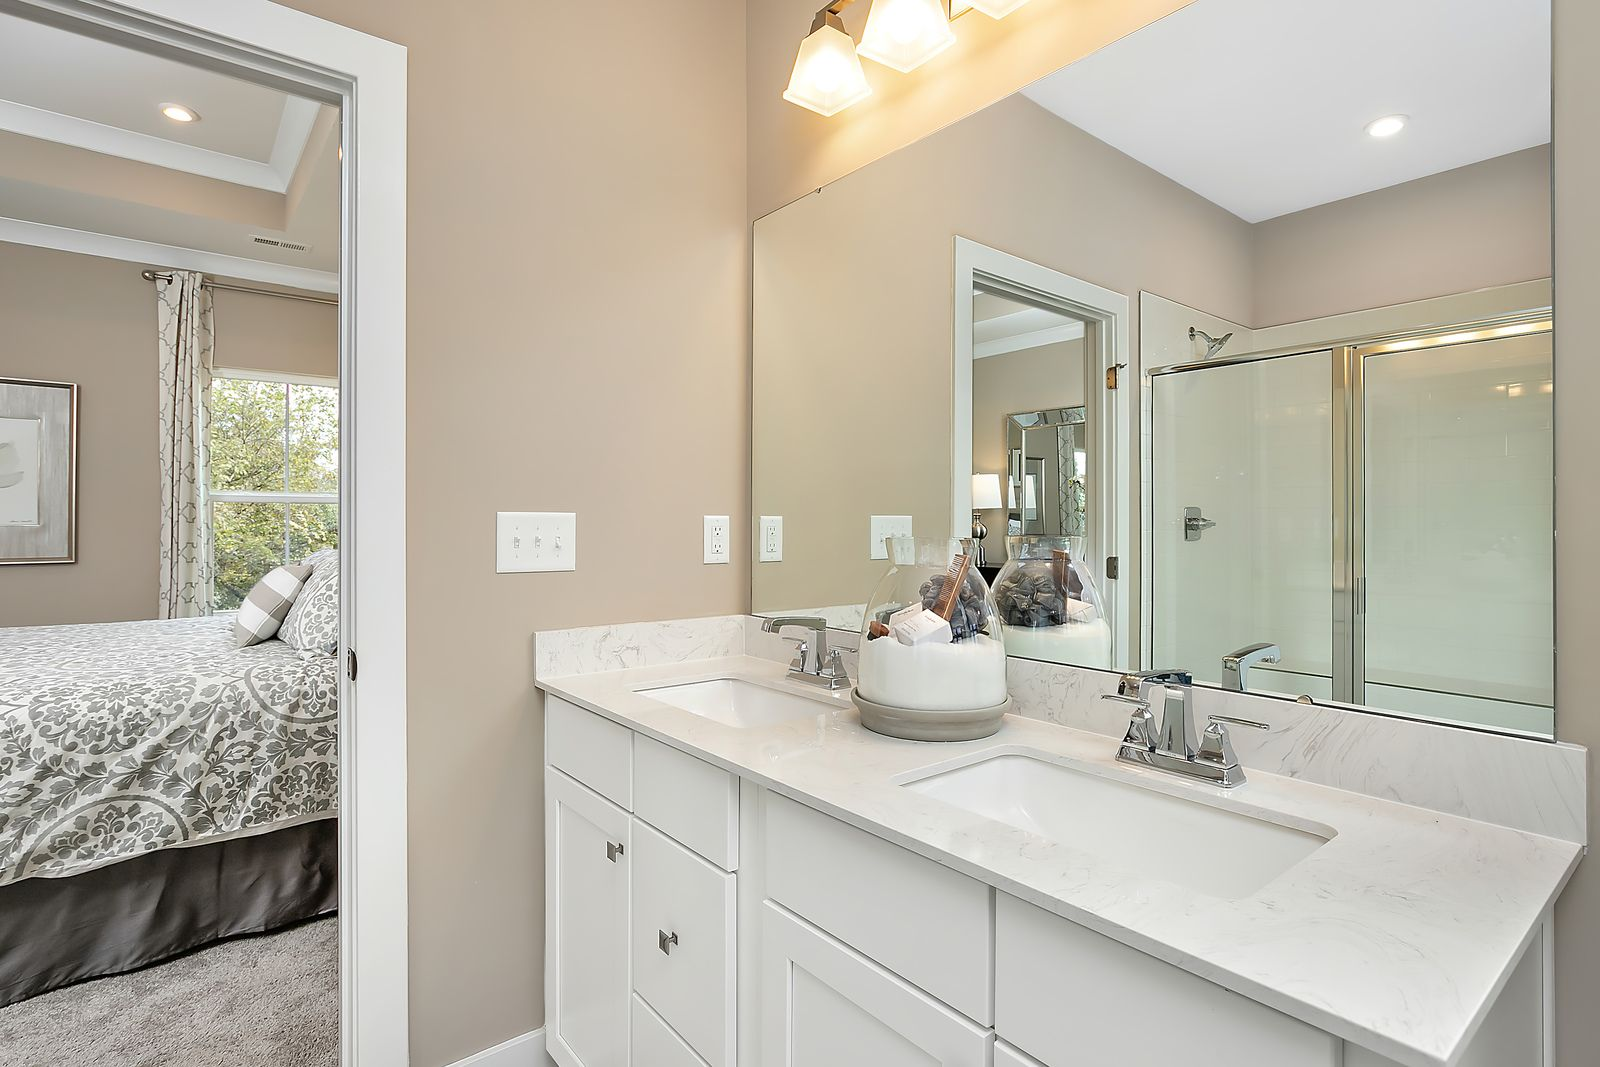 Bathroom featured in the Bramante Ranch By Ryan Homes in Cincinnati, OH